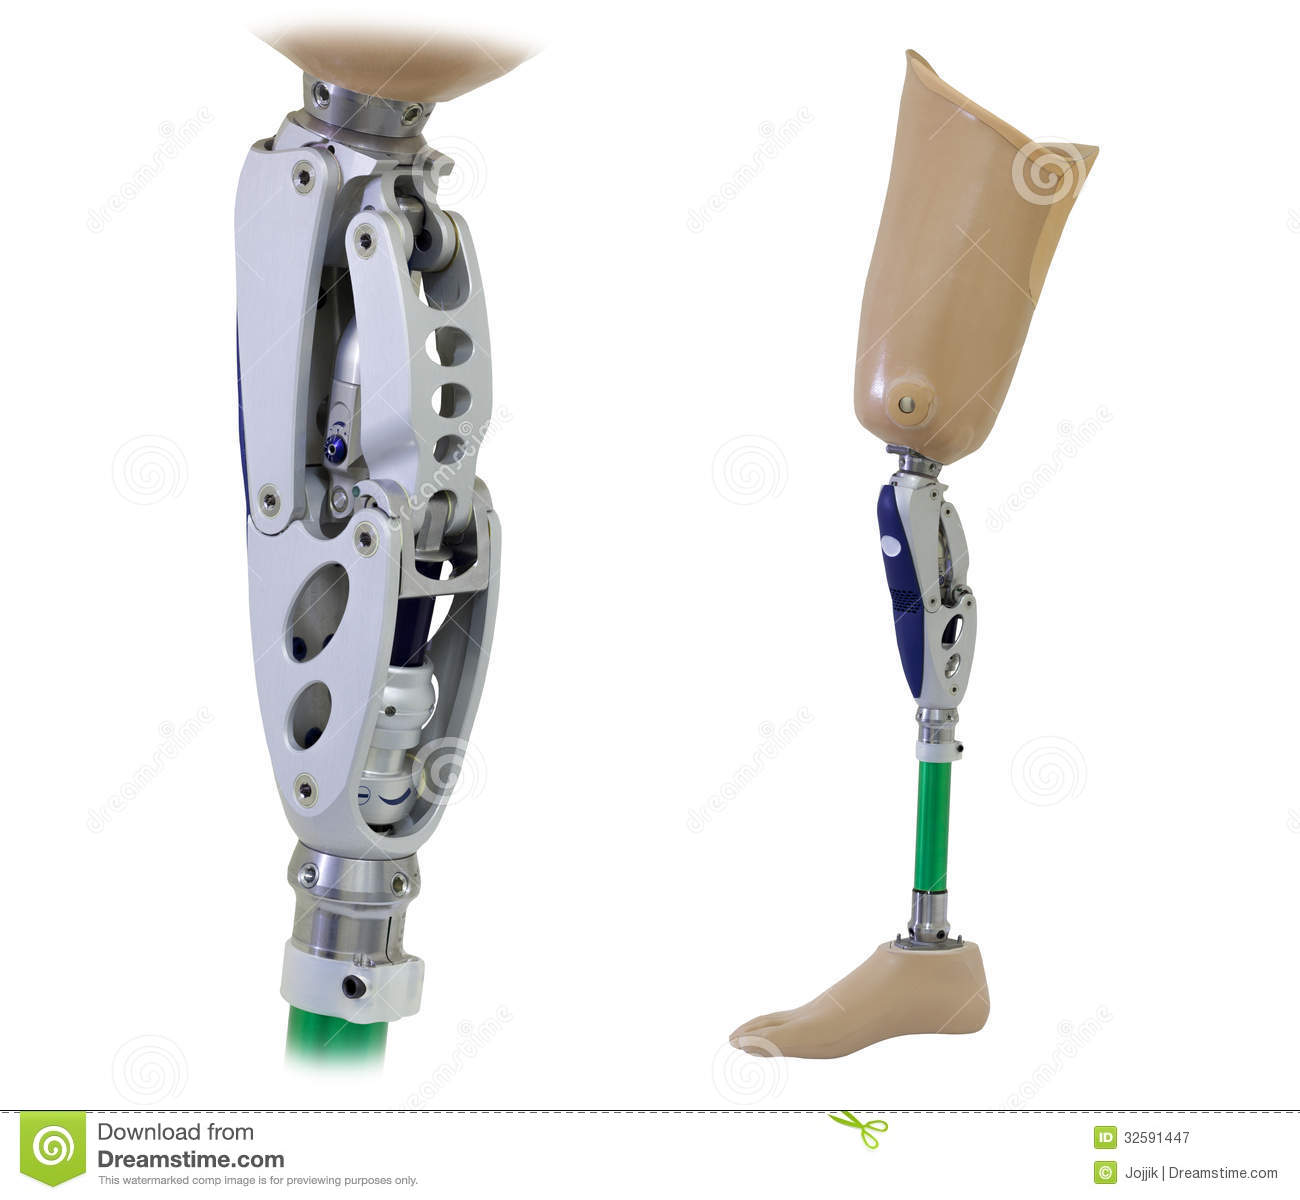 prothesis diagram Dental implant prosthetics - biohorizons has a broad product line & boasts of a  long history of scientific research in prosthetic dentistry leading to cutting edge.